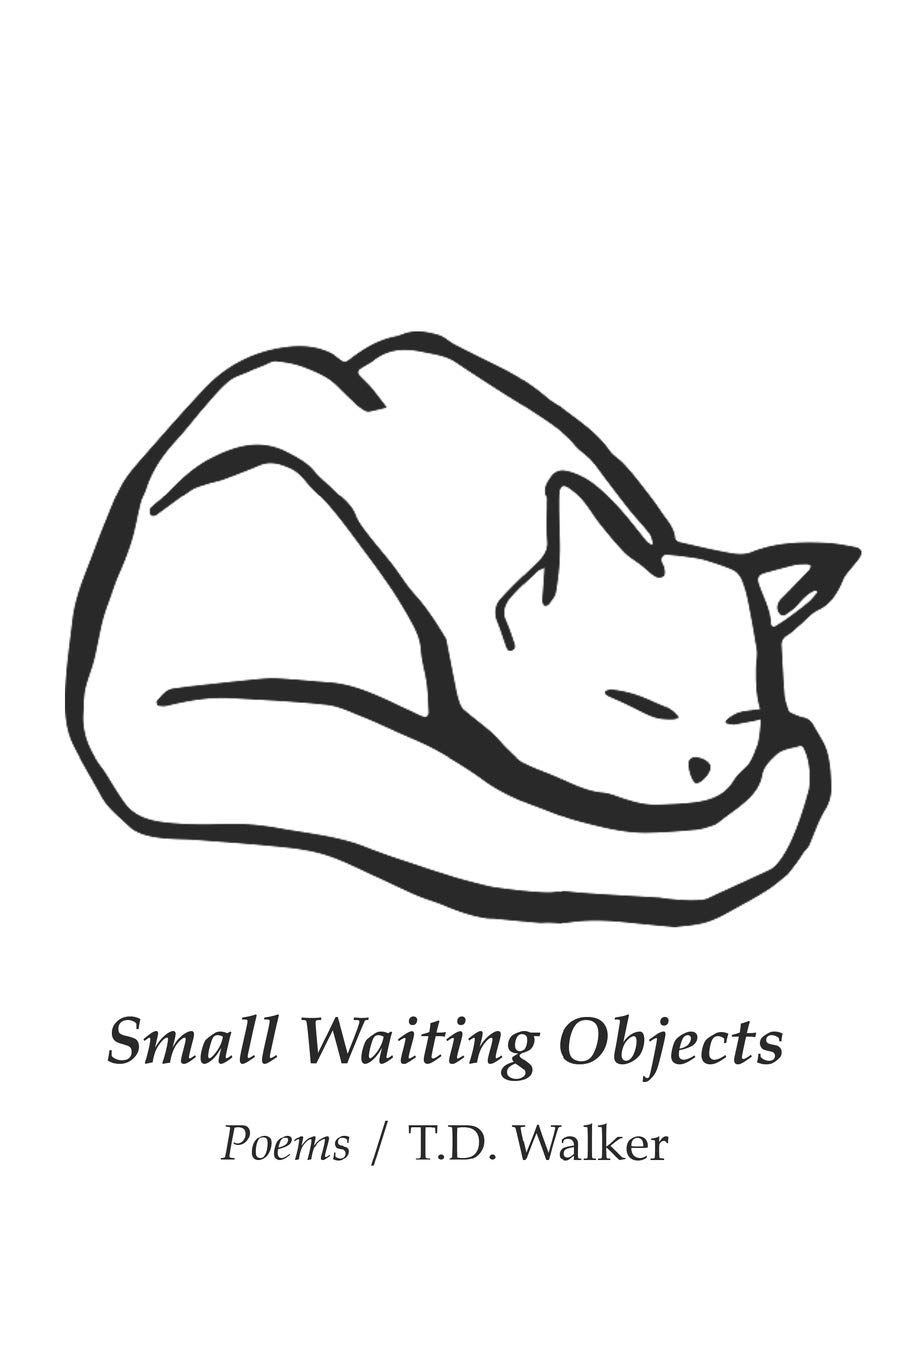 Small Waiting Objects by T. D. Walker